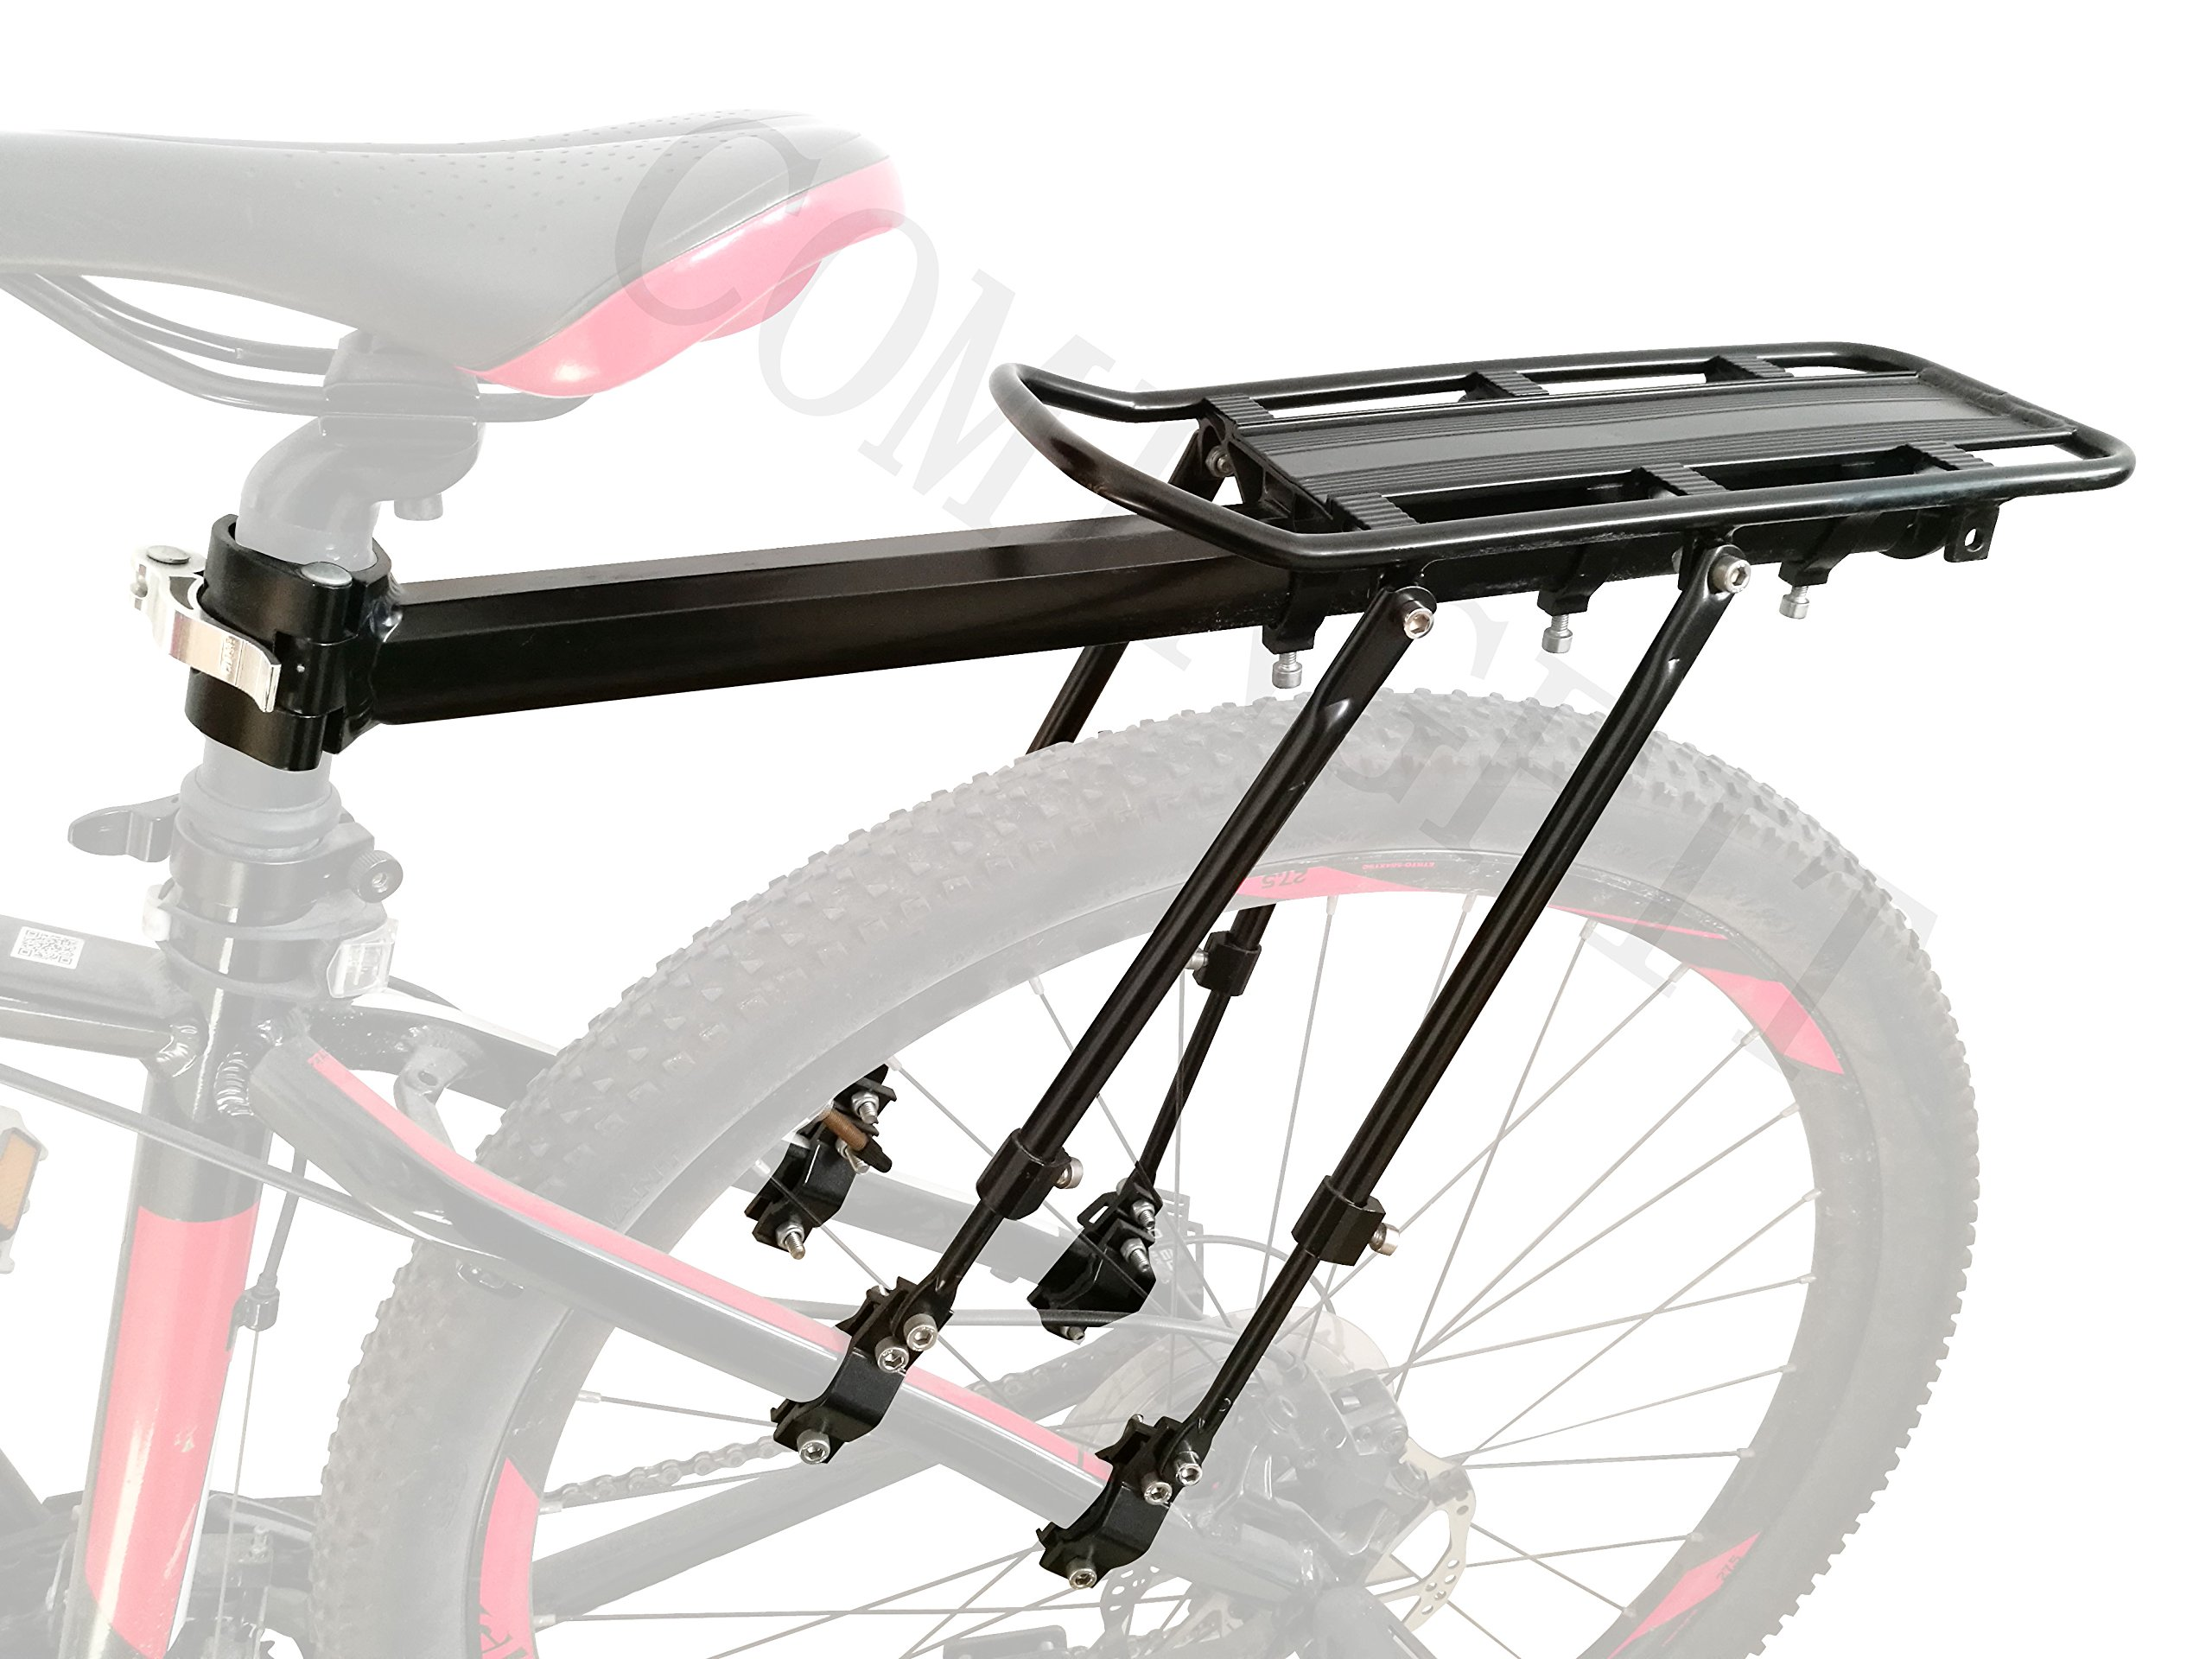 COMINGFIT 165lbs Capacity Adjustable Bike Luggage Cargo Rack-Super Strong Upgrade Bike luggage Carrier 4-Strong-Legs Bicycle Luggage Carrier